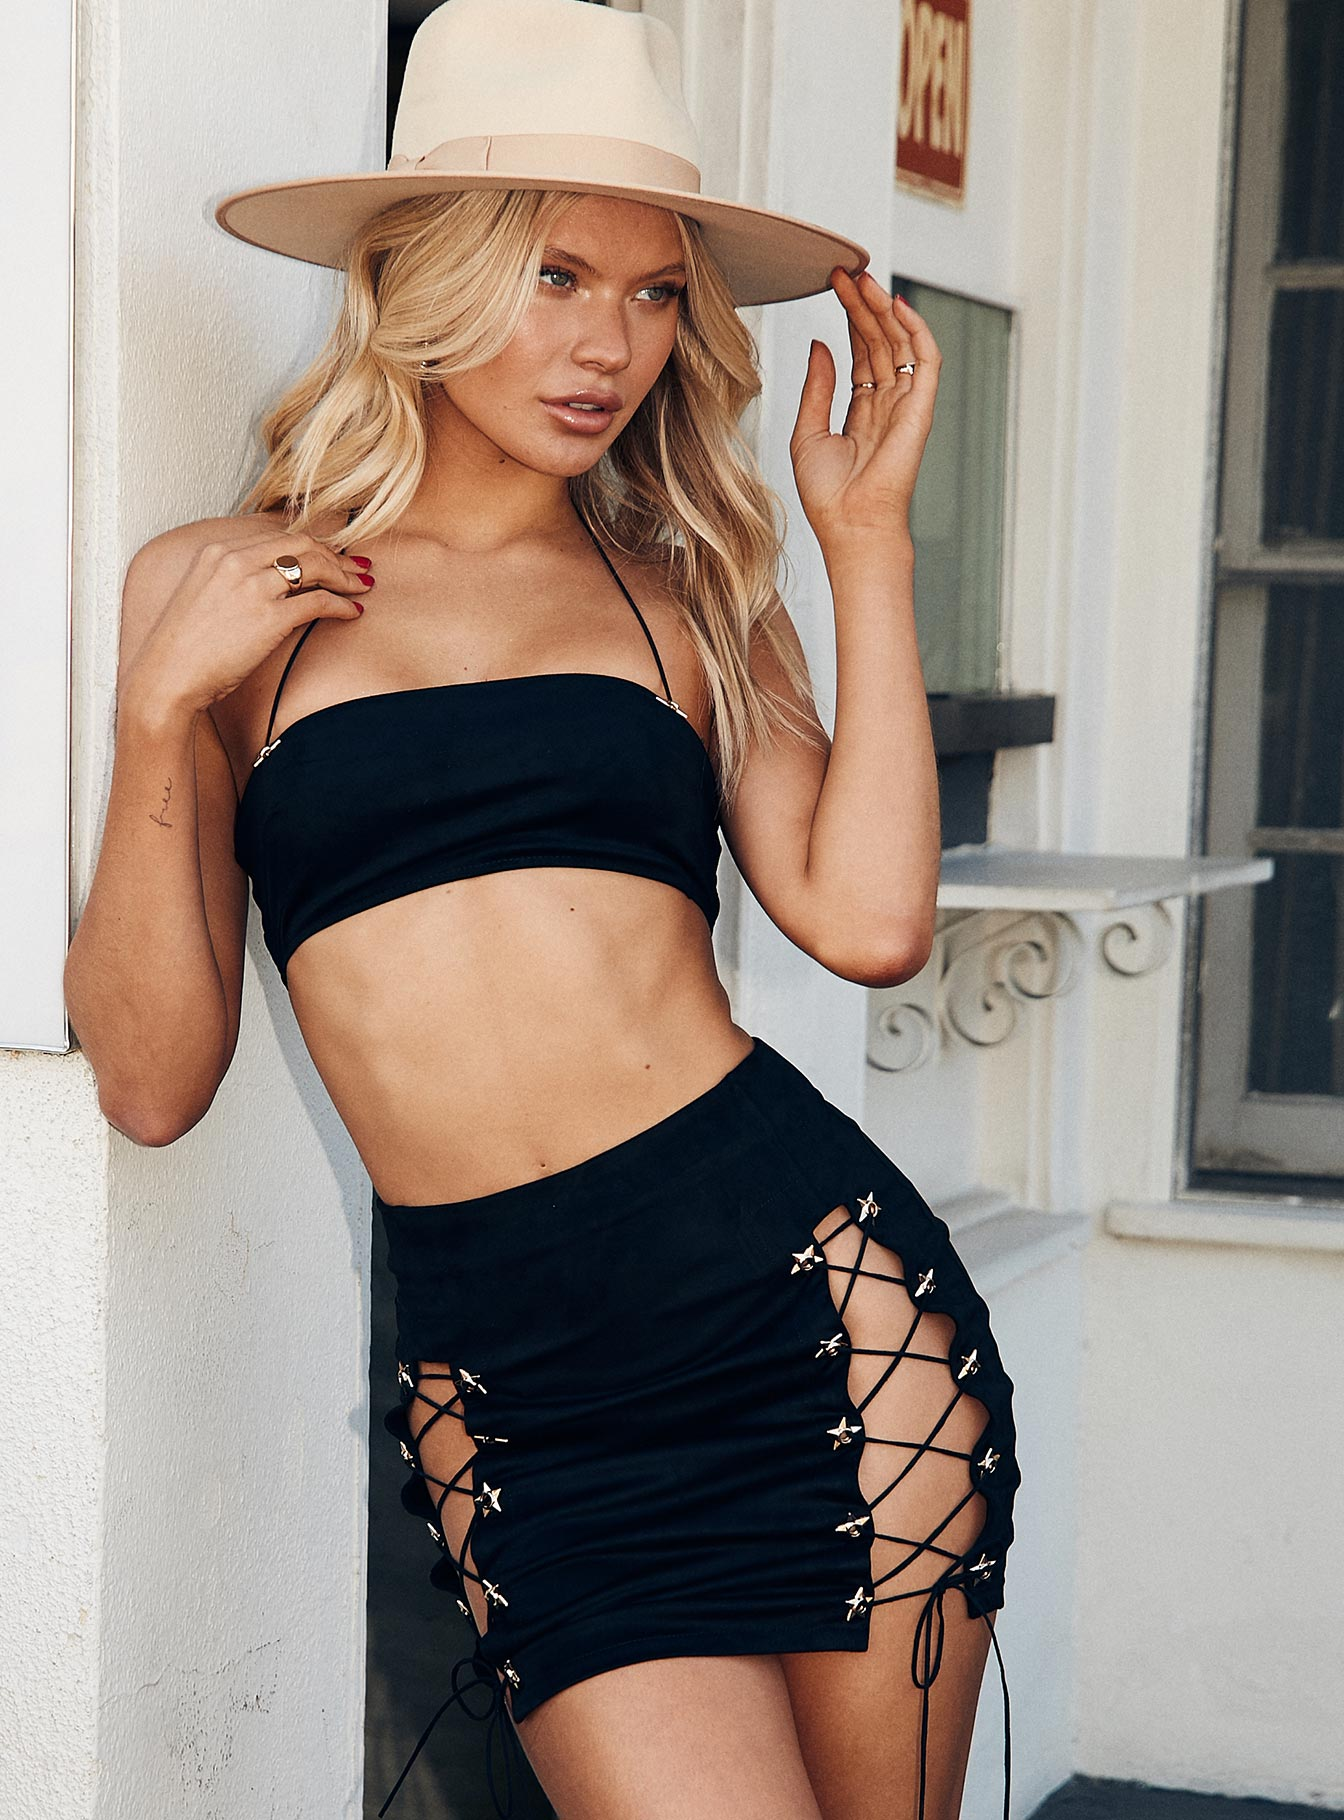 Chella Mini Skirt